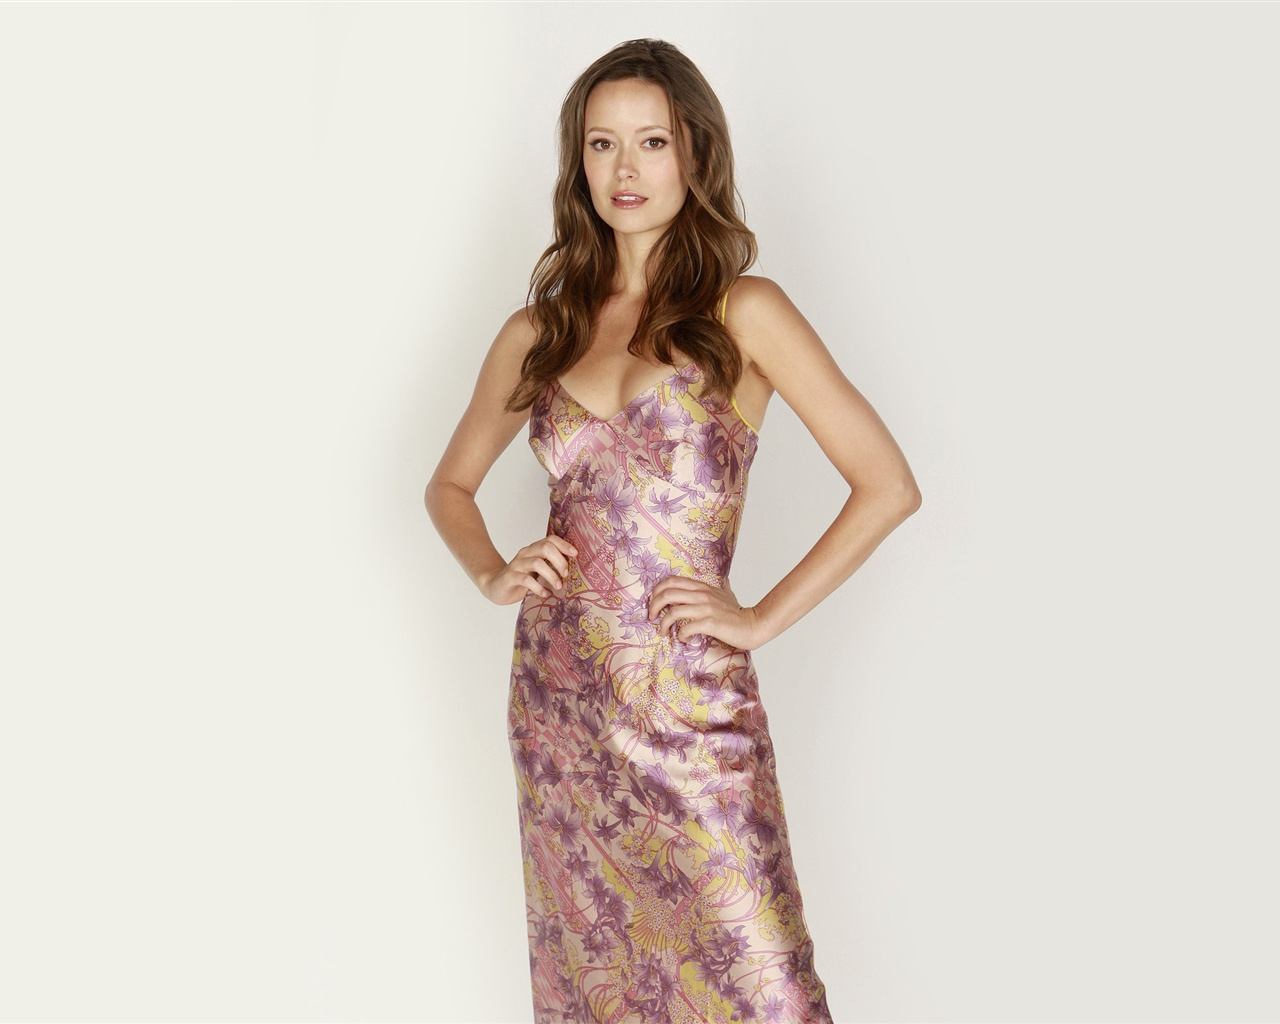 Summer Glau 07 wallpaper - 1280x1024